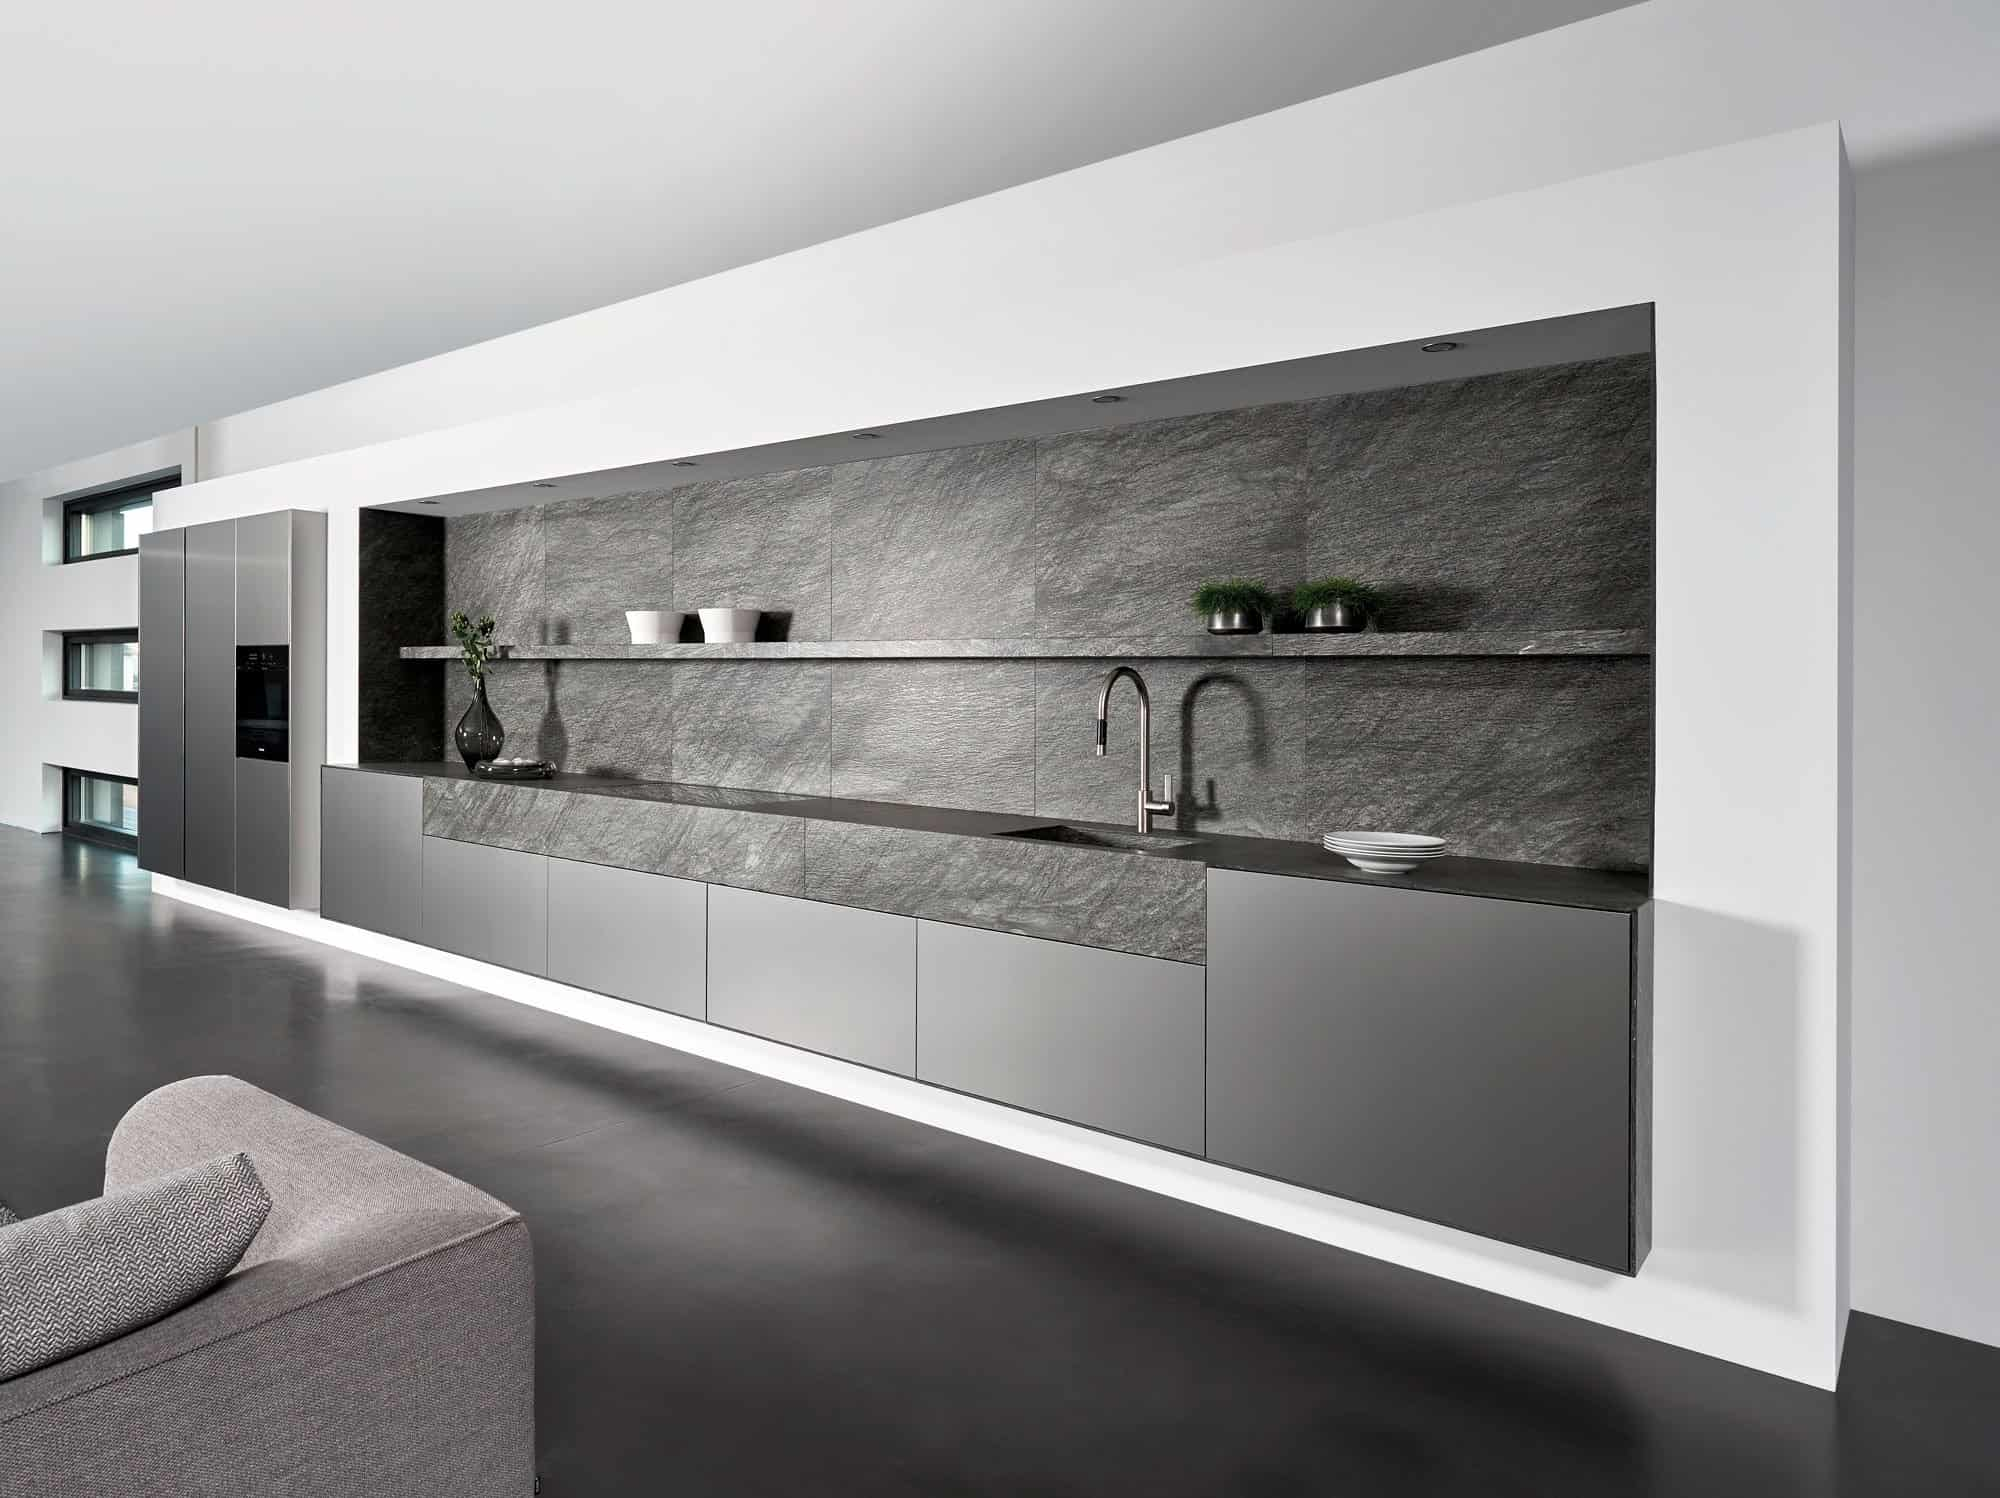 Eggersmann Modern Kitchen and Home Living Design for Every Room